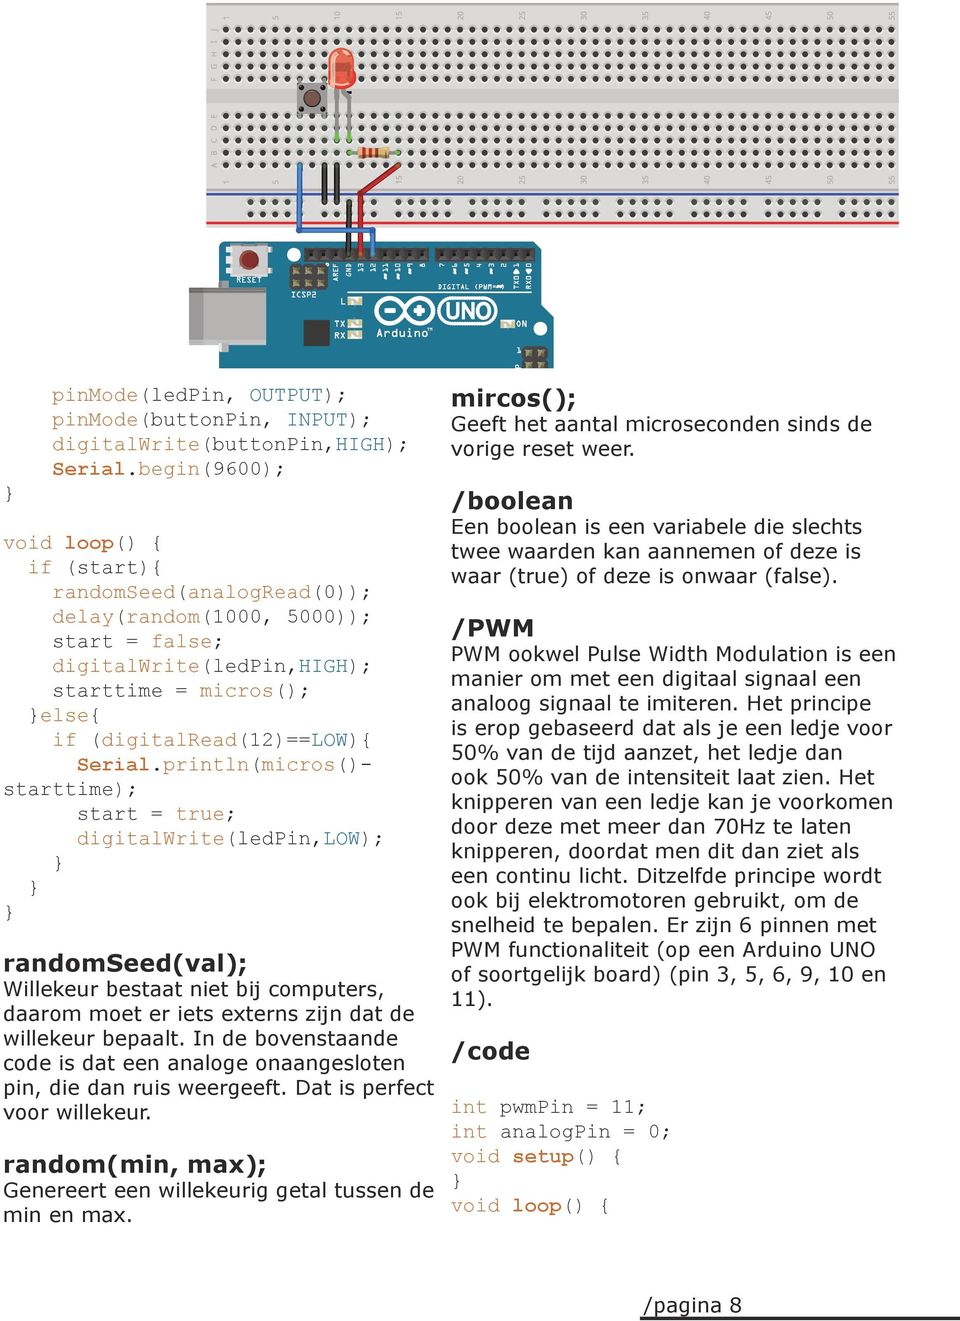 println(micros()- starttime); start = true; digitalwrite(ledpin,low); randomseed(val); Willekeur bestaat niet bij computers, daarom moet er iets externs zijn dat de willekeur bepaalt.